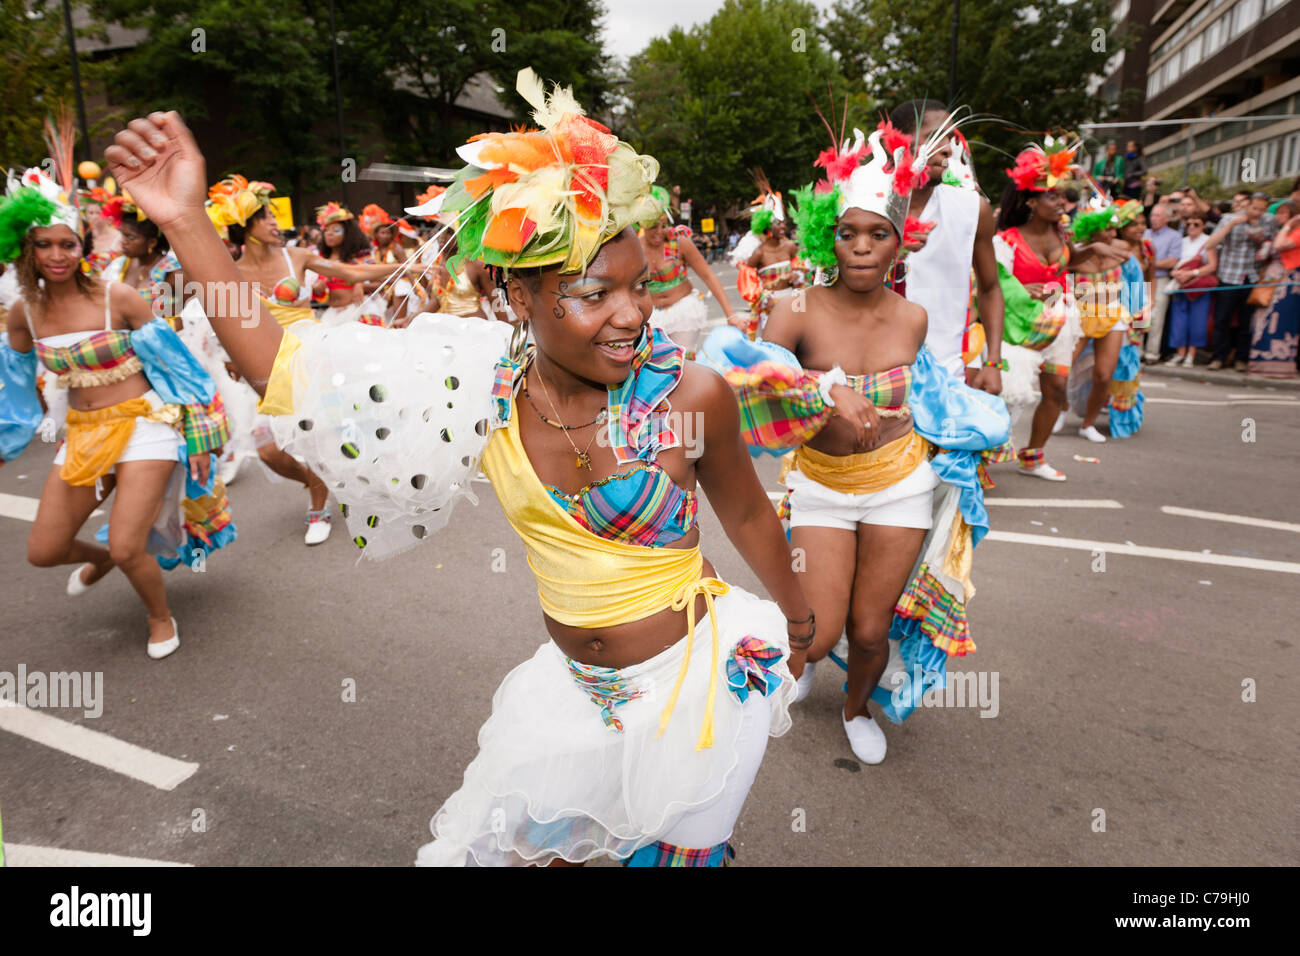 A group of women in colourful costumes dancing in the parade of the Notting Hill Carnival 2011. - Stock Image